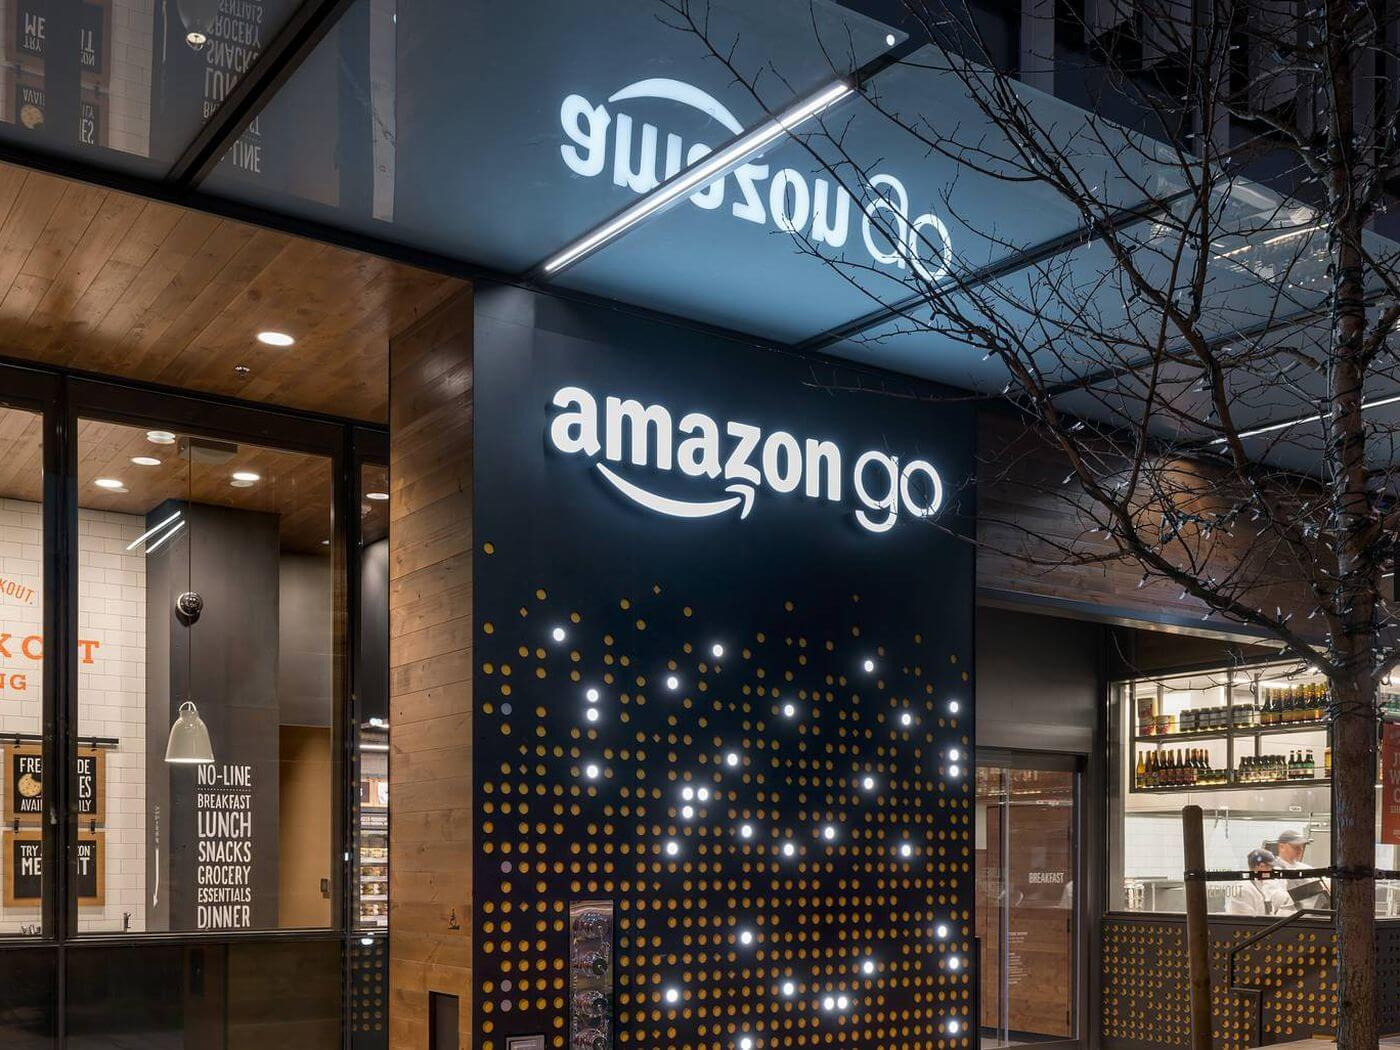 Amazon's store expansion is beyond flawless for introverts